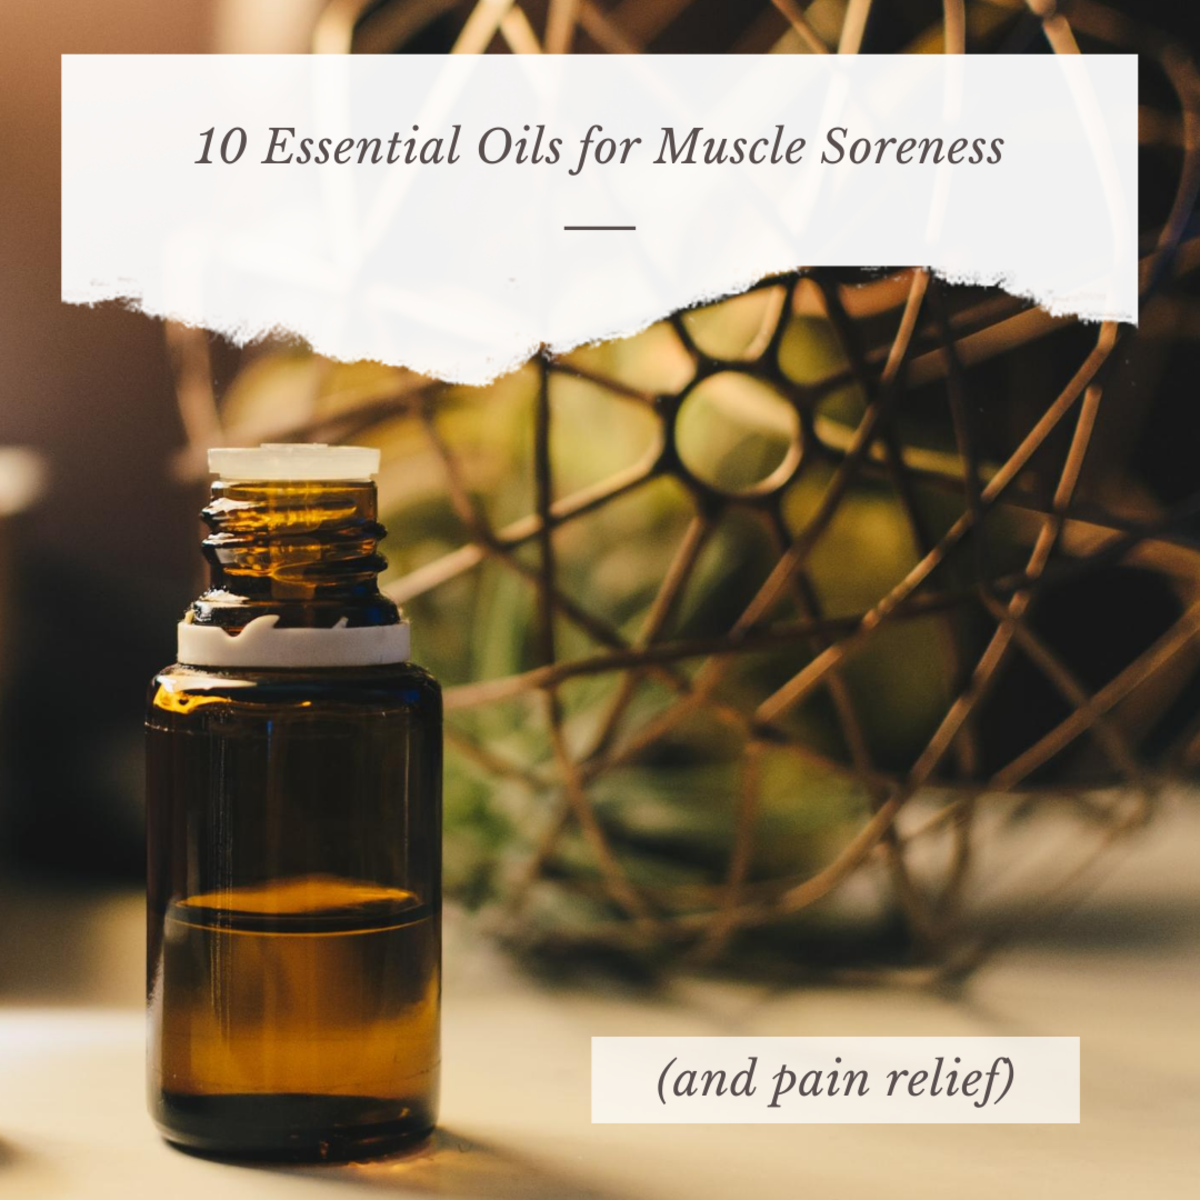 10 Essential Oils That Relieve Sore Muscles